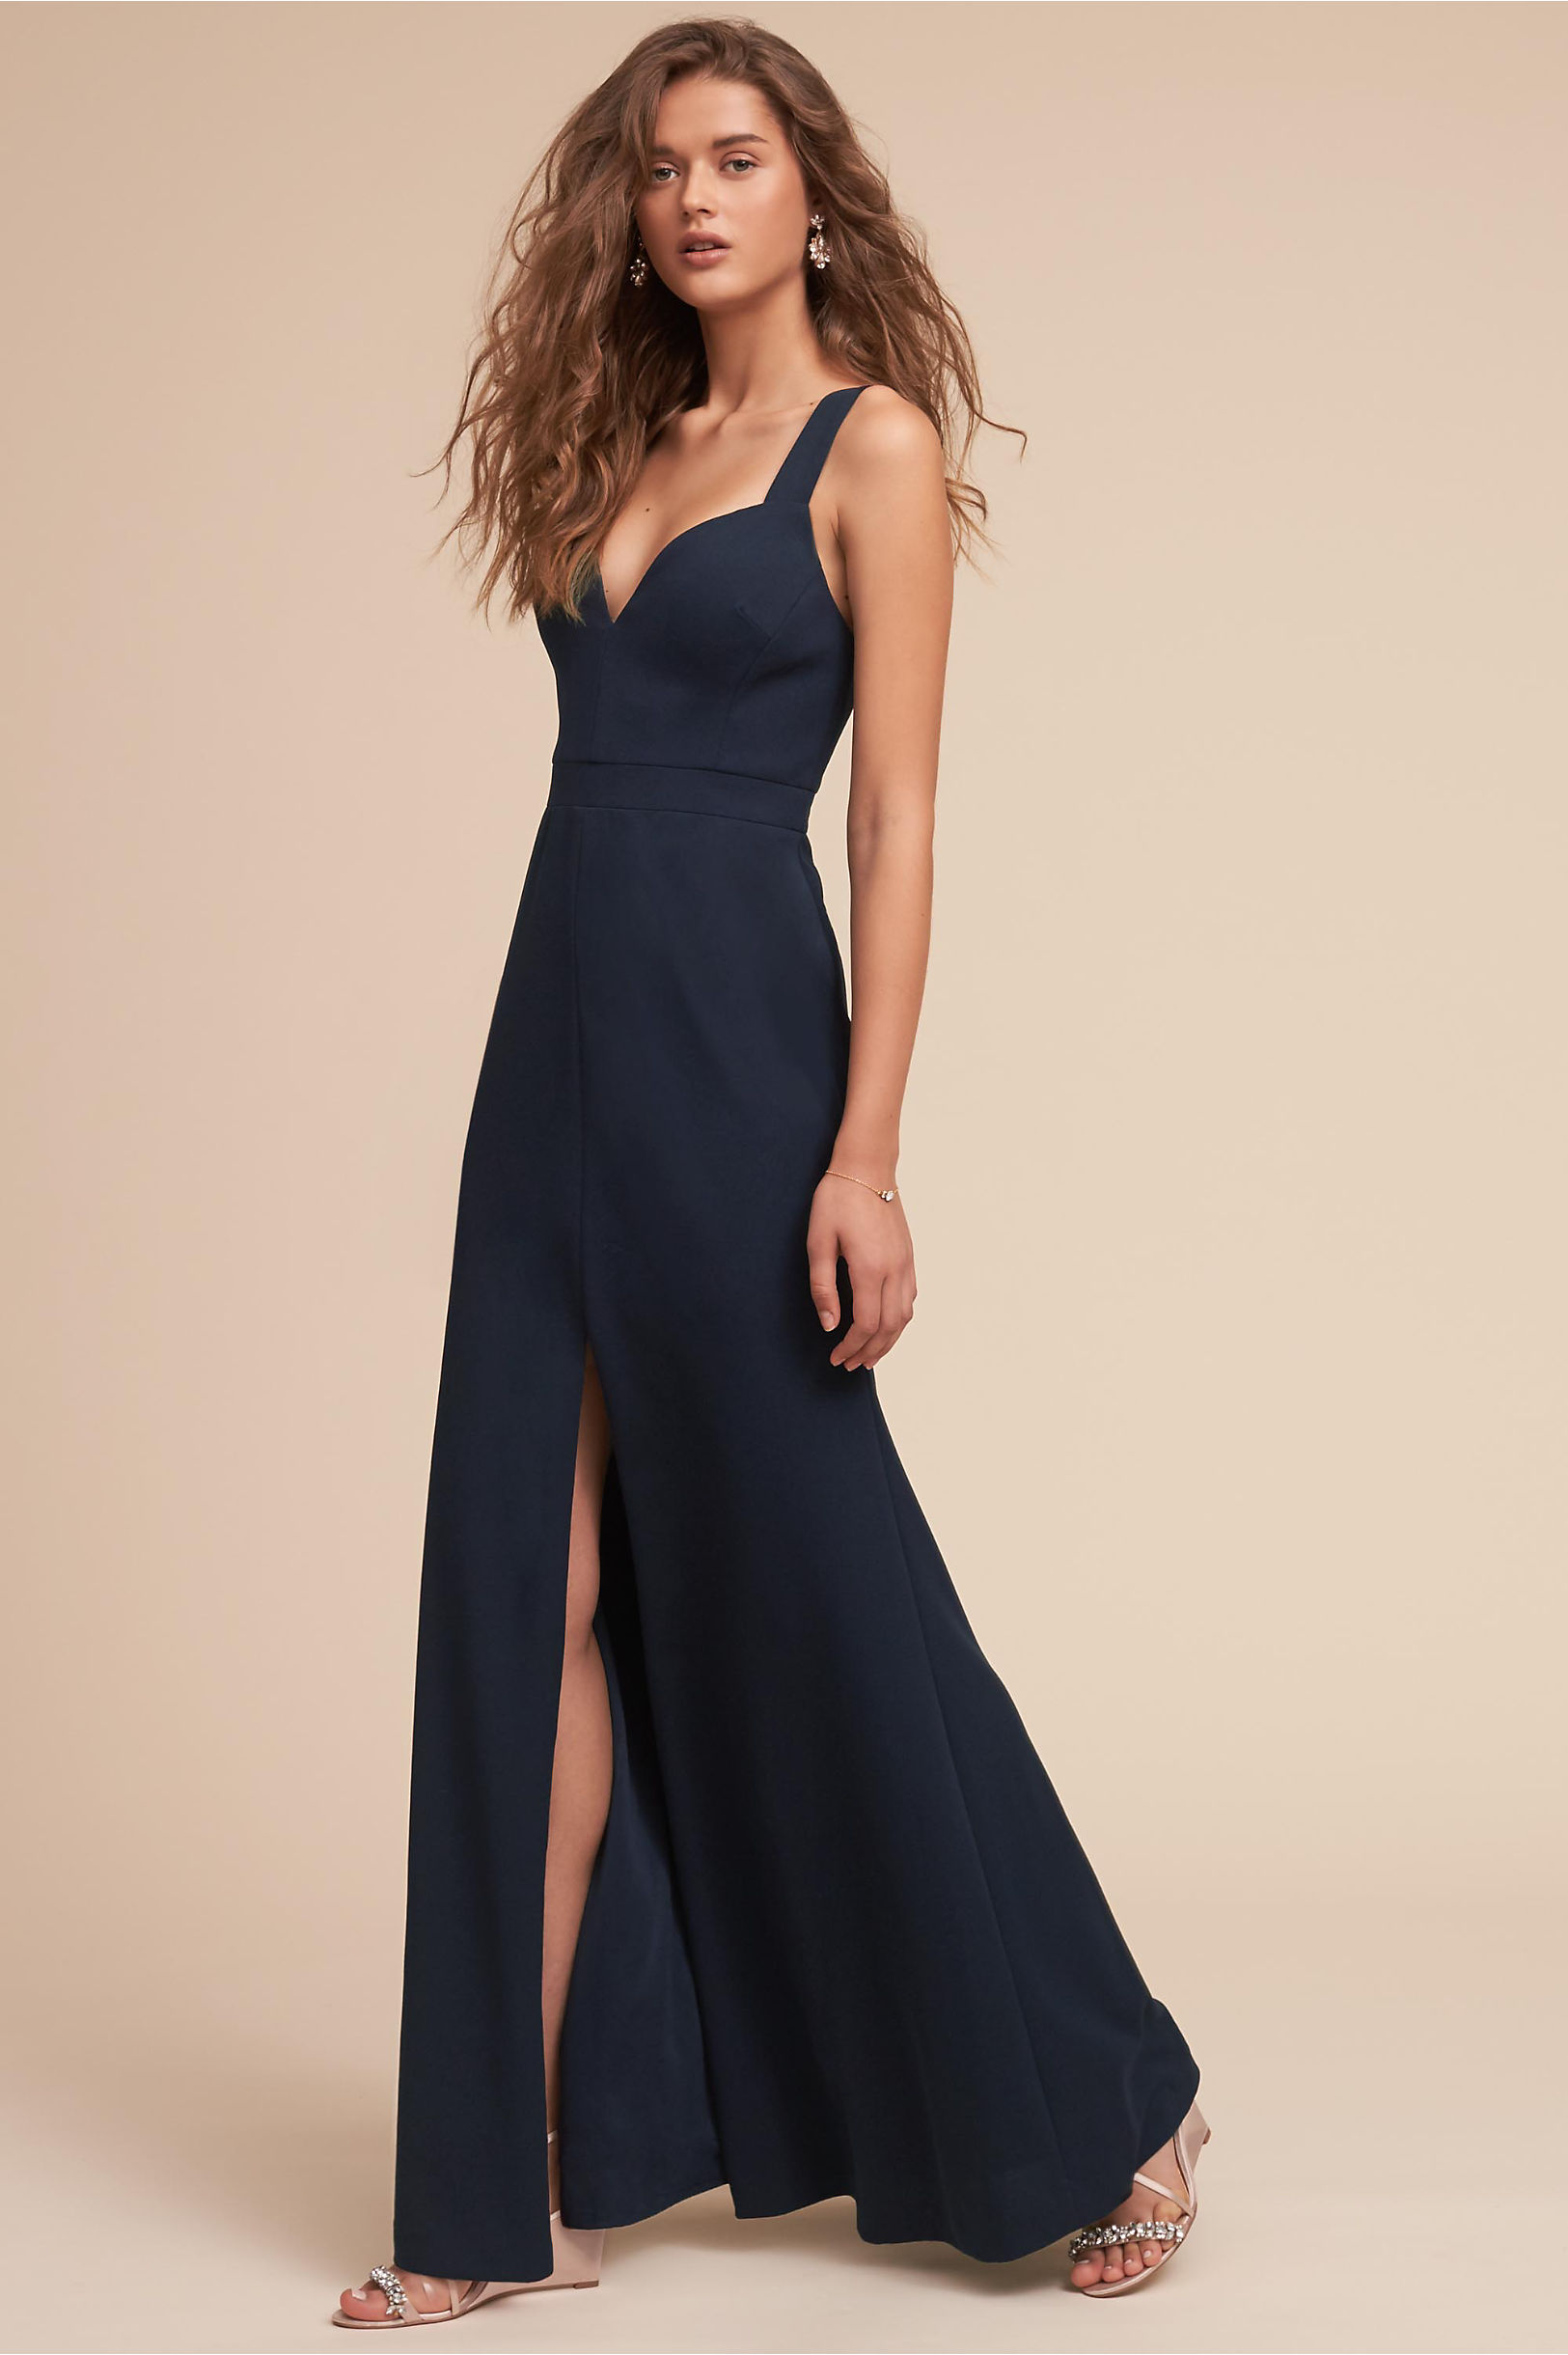 Ansel Dress Navy in Bridesmaids & Bridal Party | BHLDN